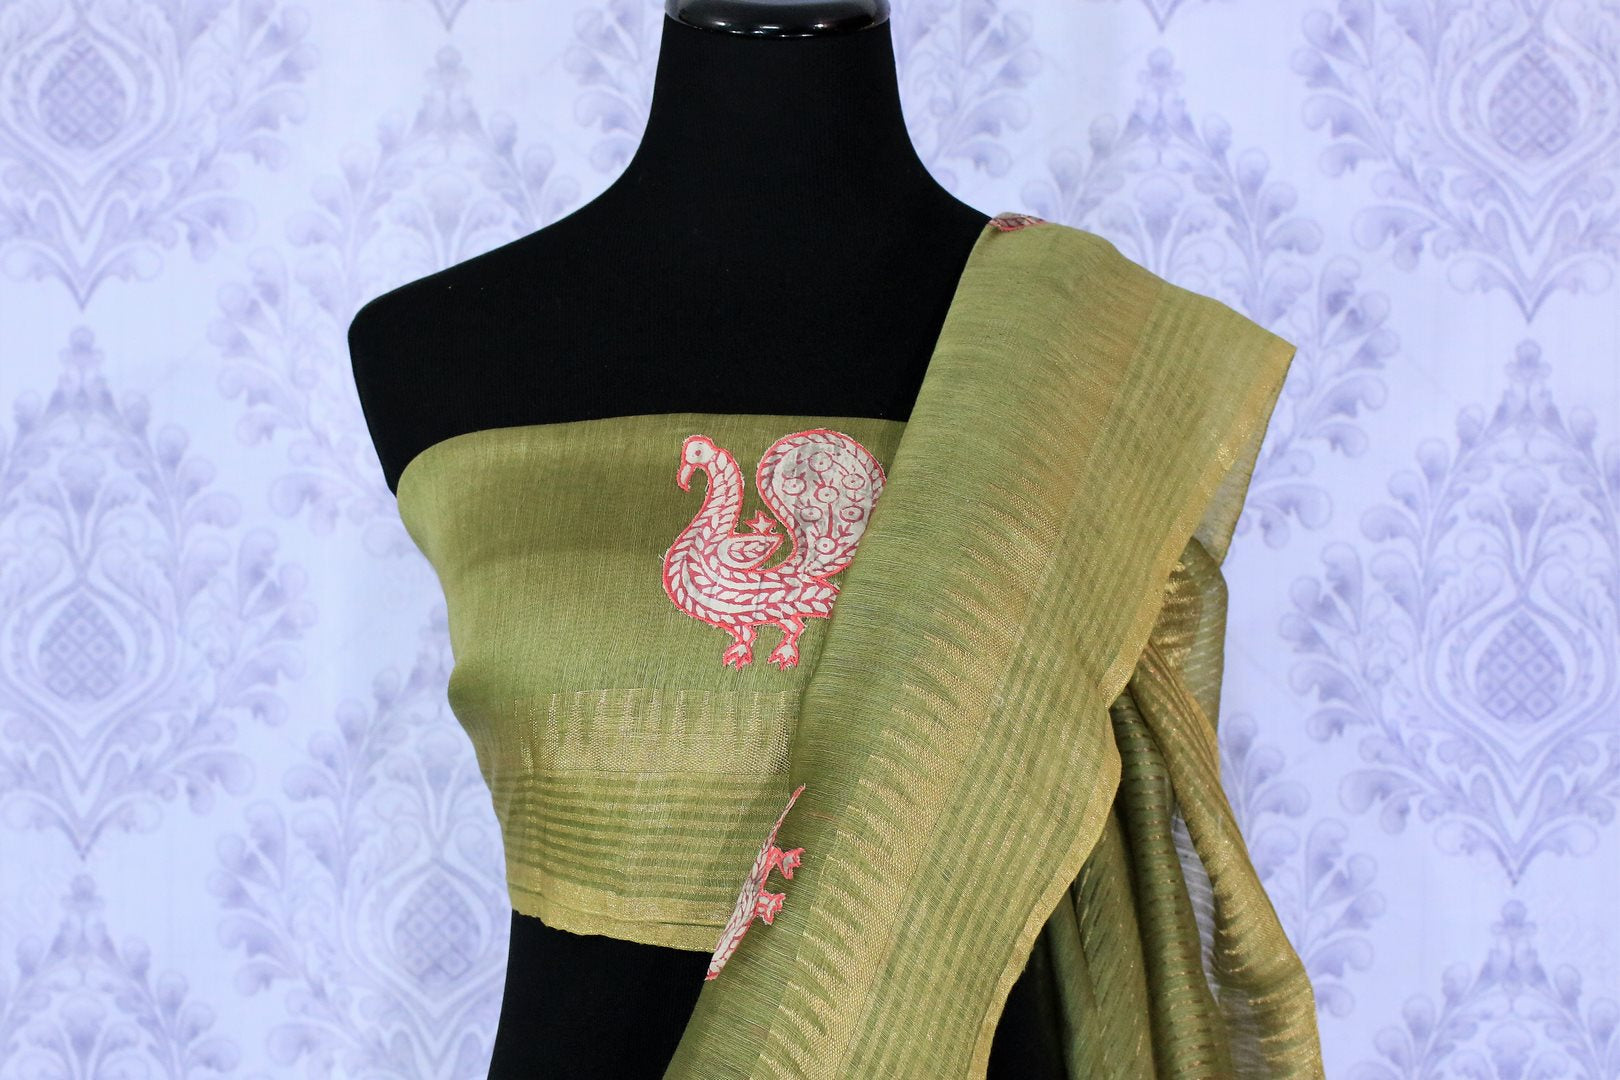 Buy olive green woven tussar saree online in USA with applique work. The saree is an alluring choice for summer parties and special occasions. Buy more such Indian handloom sarees, pure tussar sarees in USA at Pure Elegance exclusive fashion store or shop online at the comfort of your home.-blouse pallu